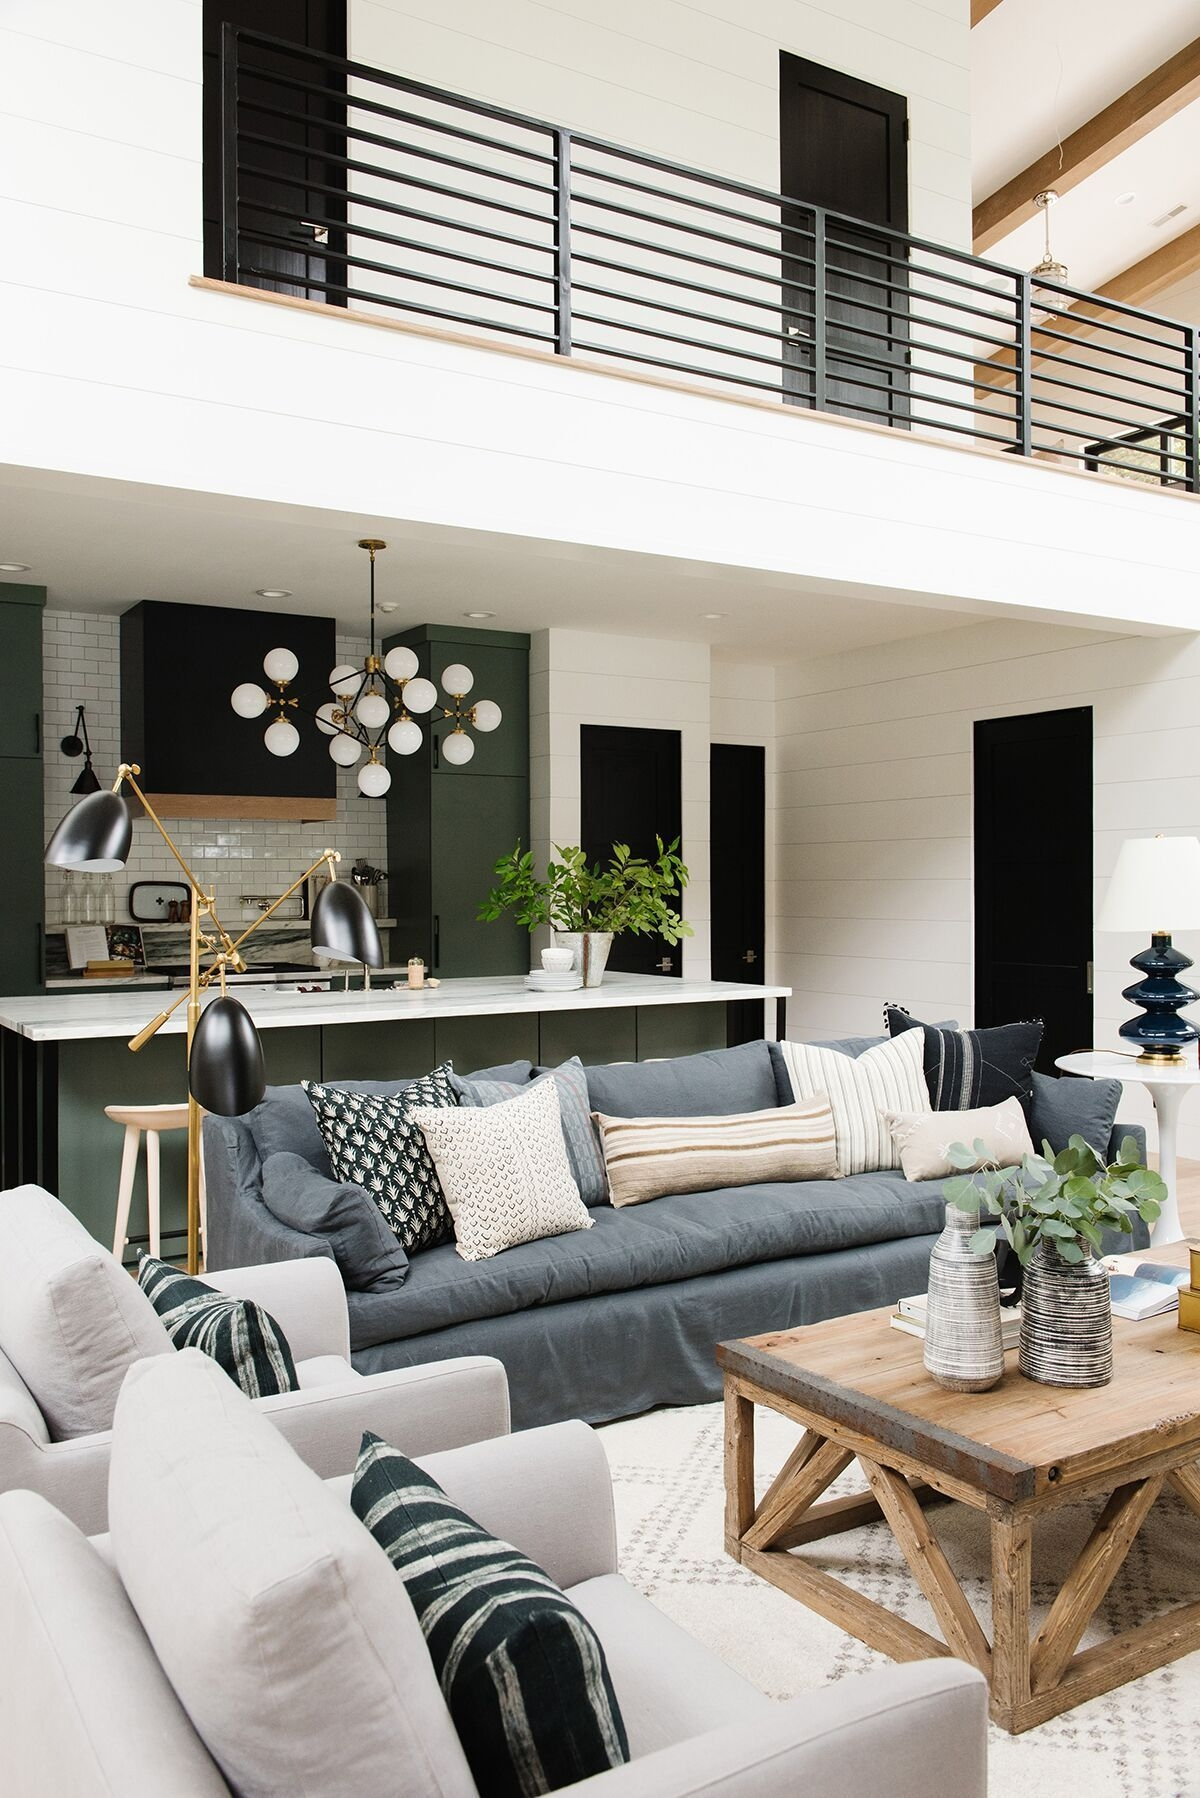 30 Outstanding Home Interior Design Ideas To Make Your Home